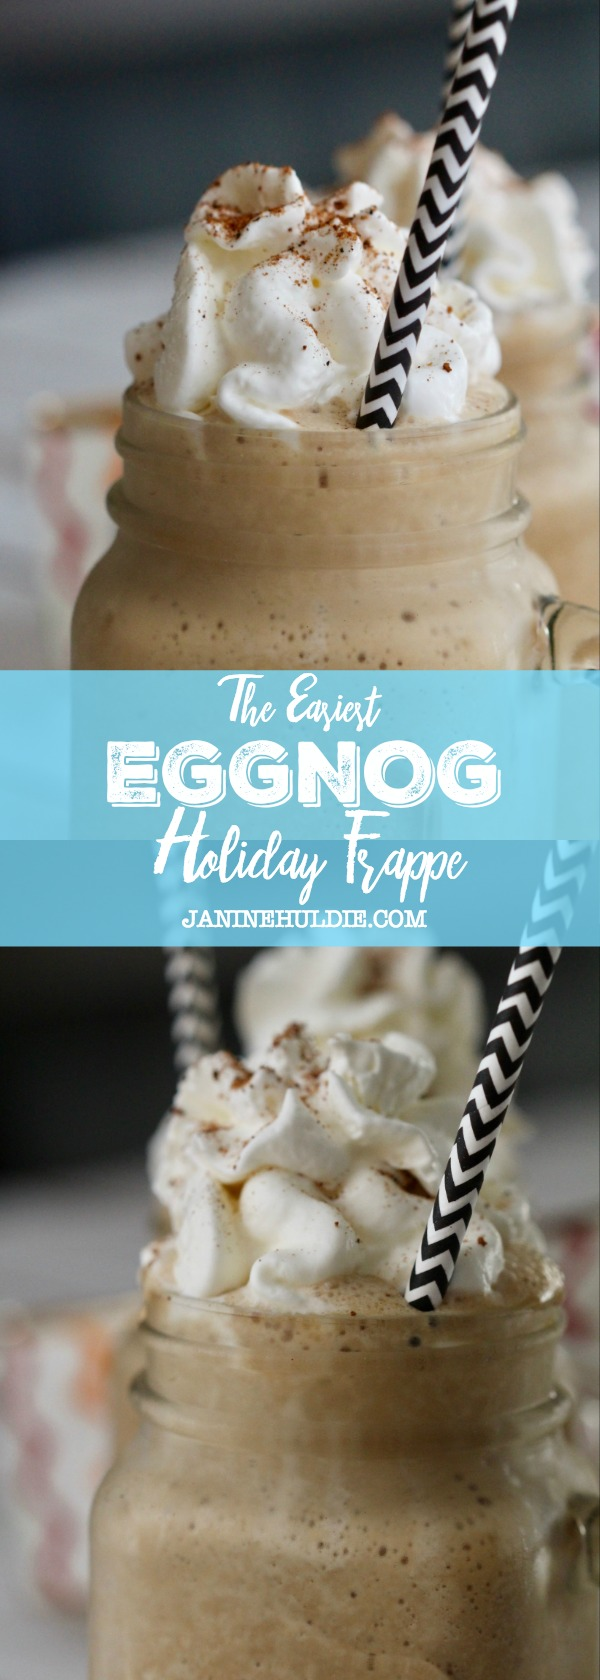 The Easiest Eggnog Holiday Frappe